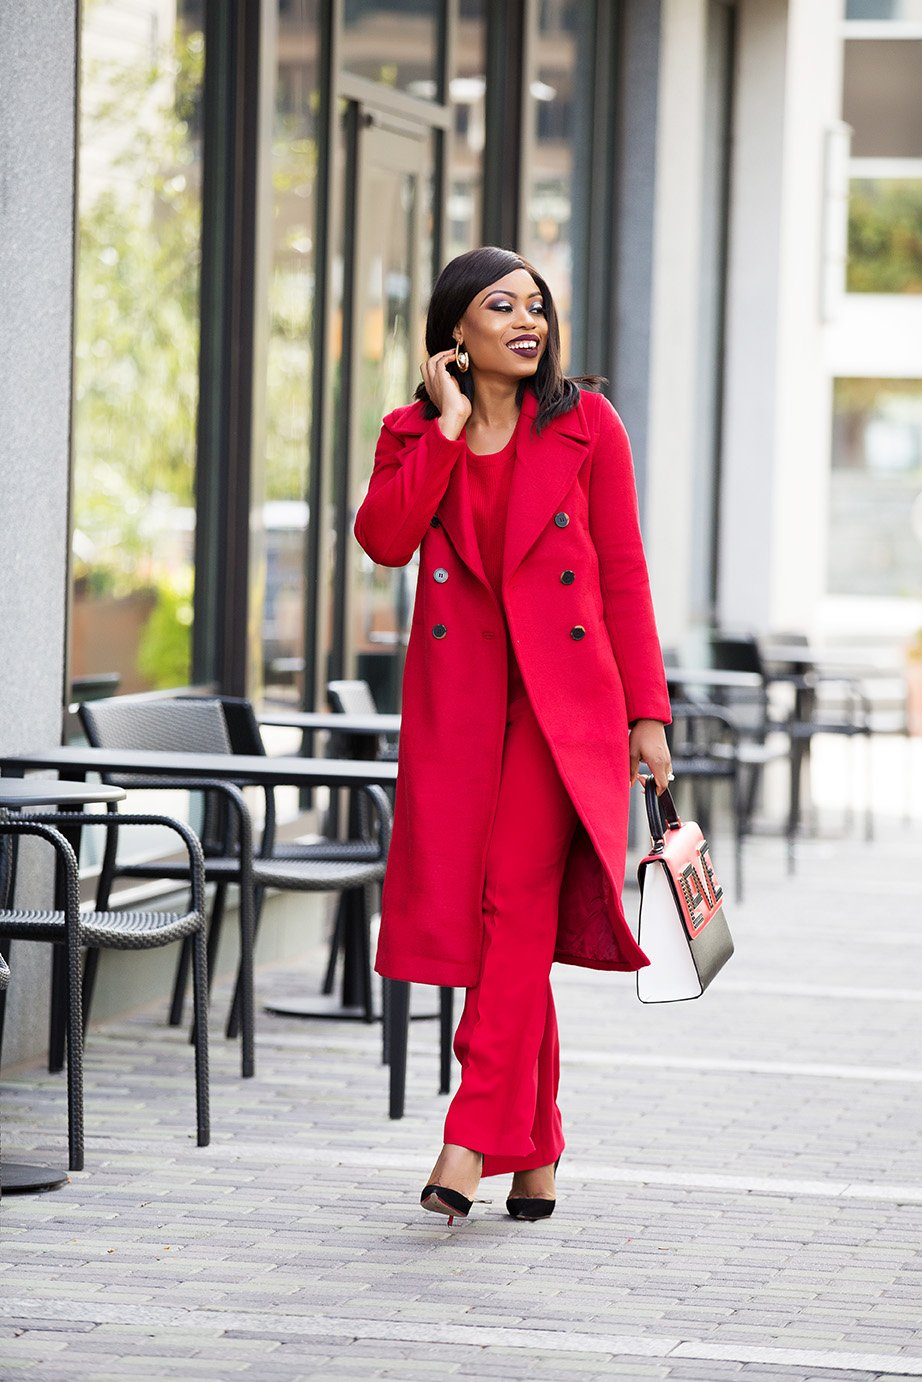 stella-adewunmi-in-monochromatic-red-outfit-holiday-work-party